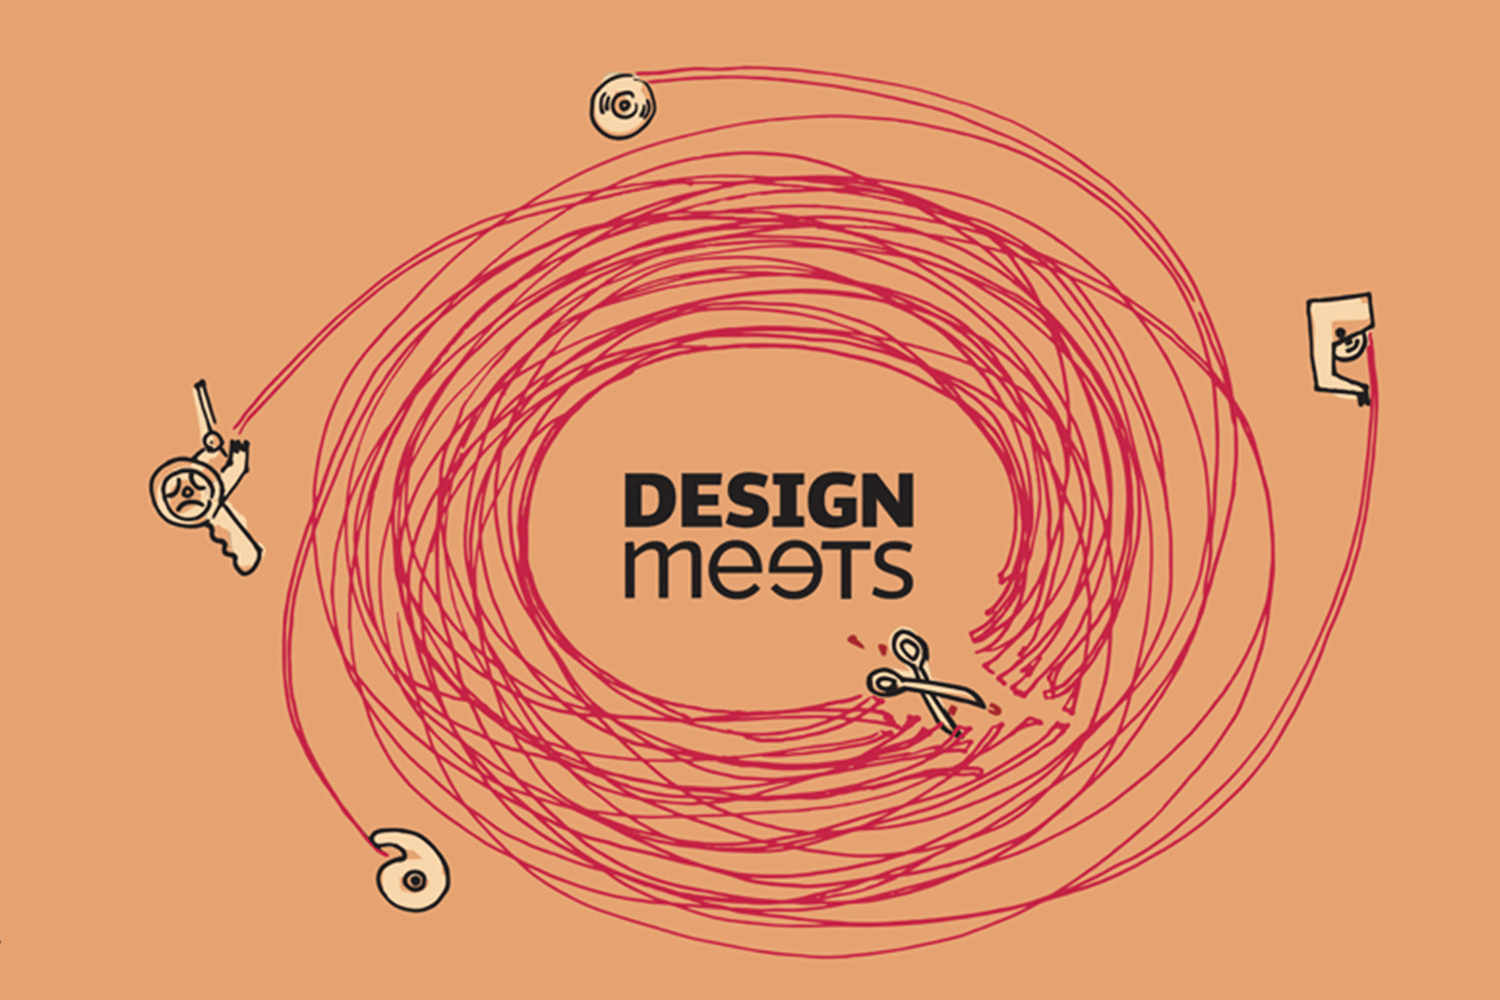 Coming Soon: DesignMeets… Public Policy – November 26